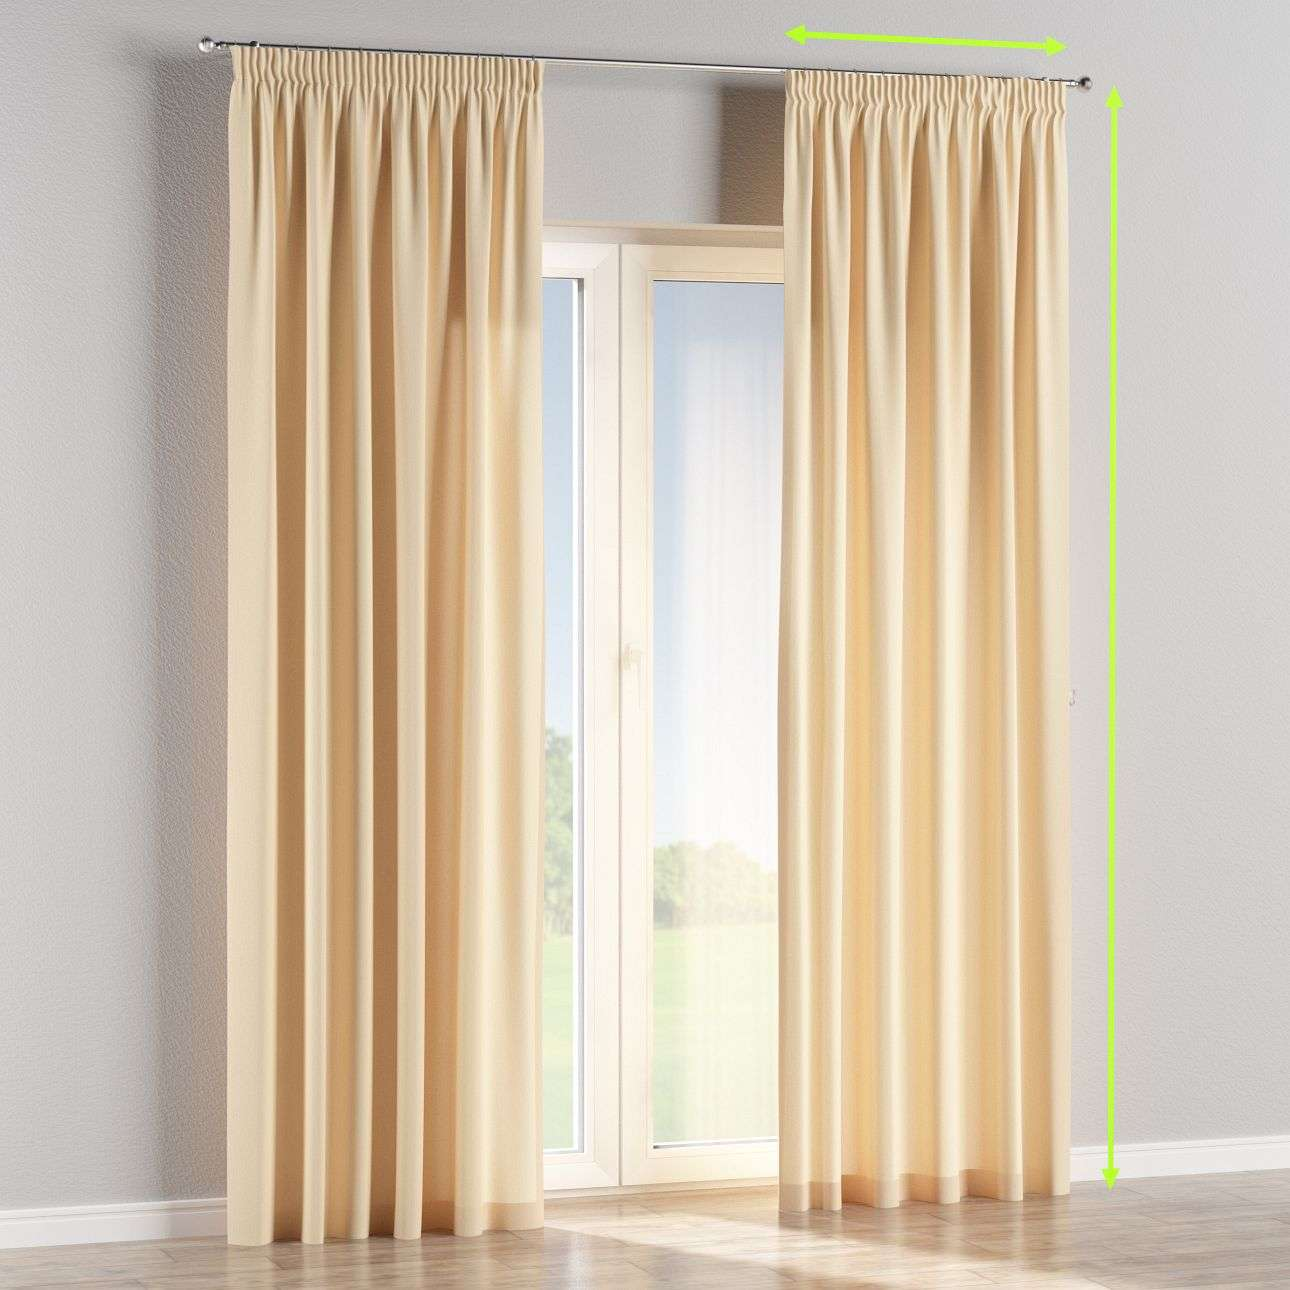 Pencil pleat lined curtains in collection Chenille, fabric: 702-22